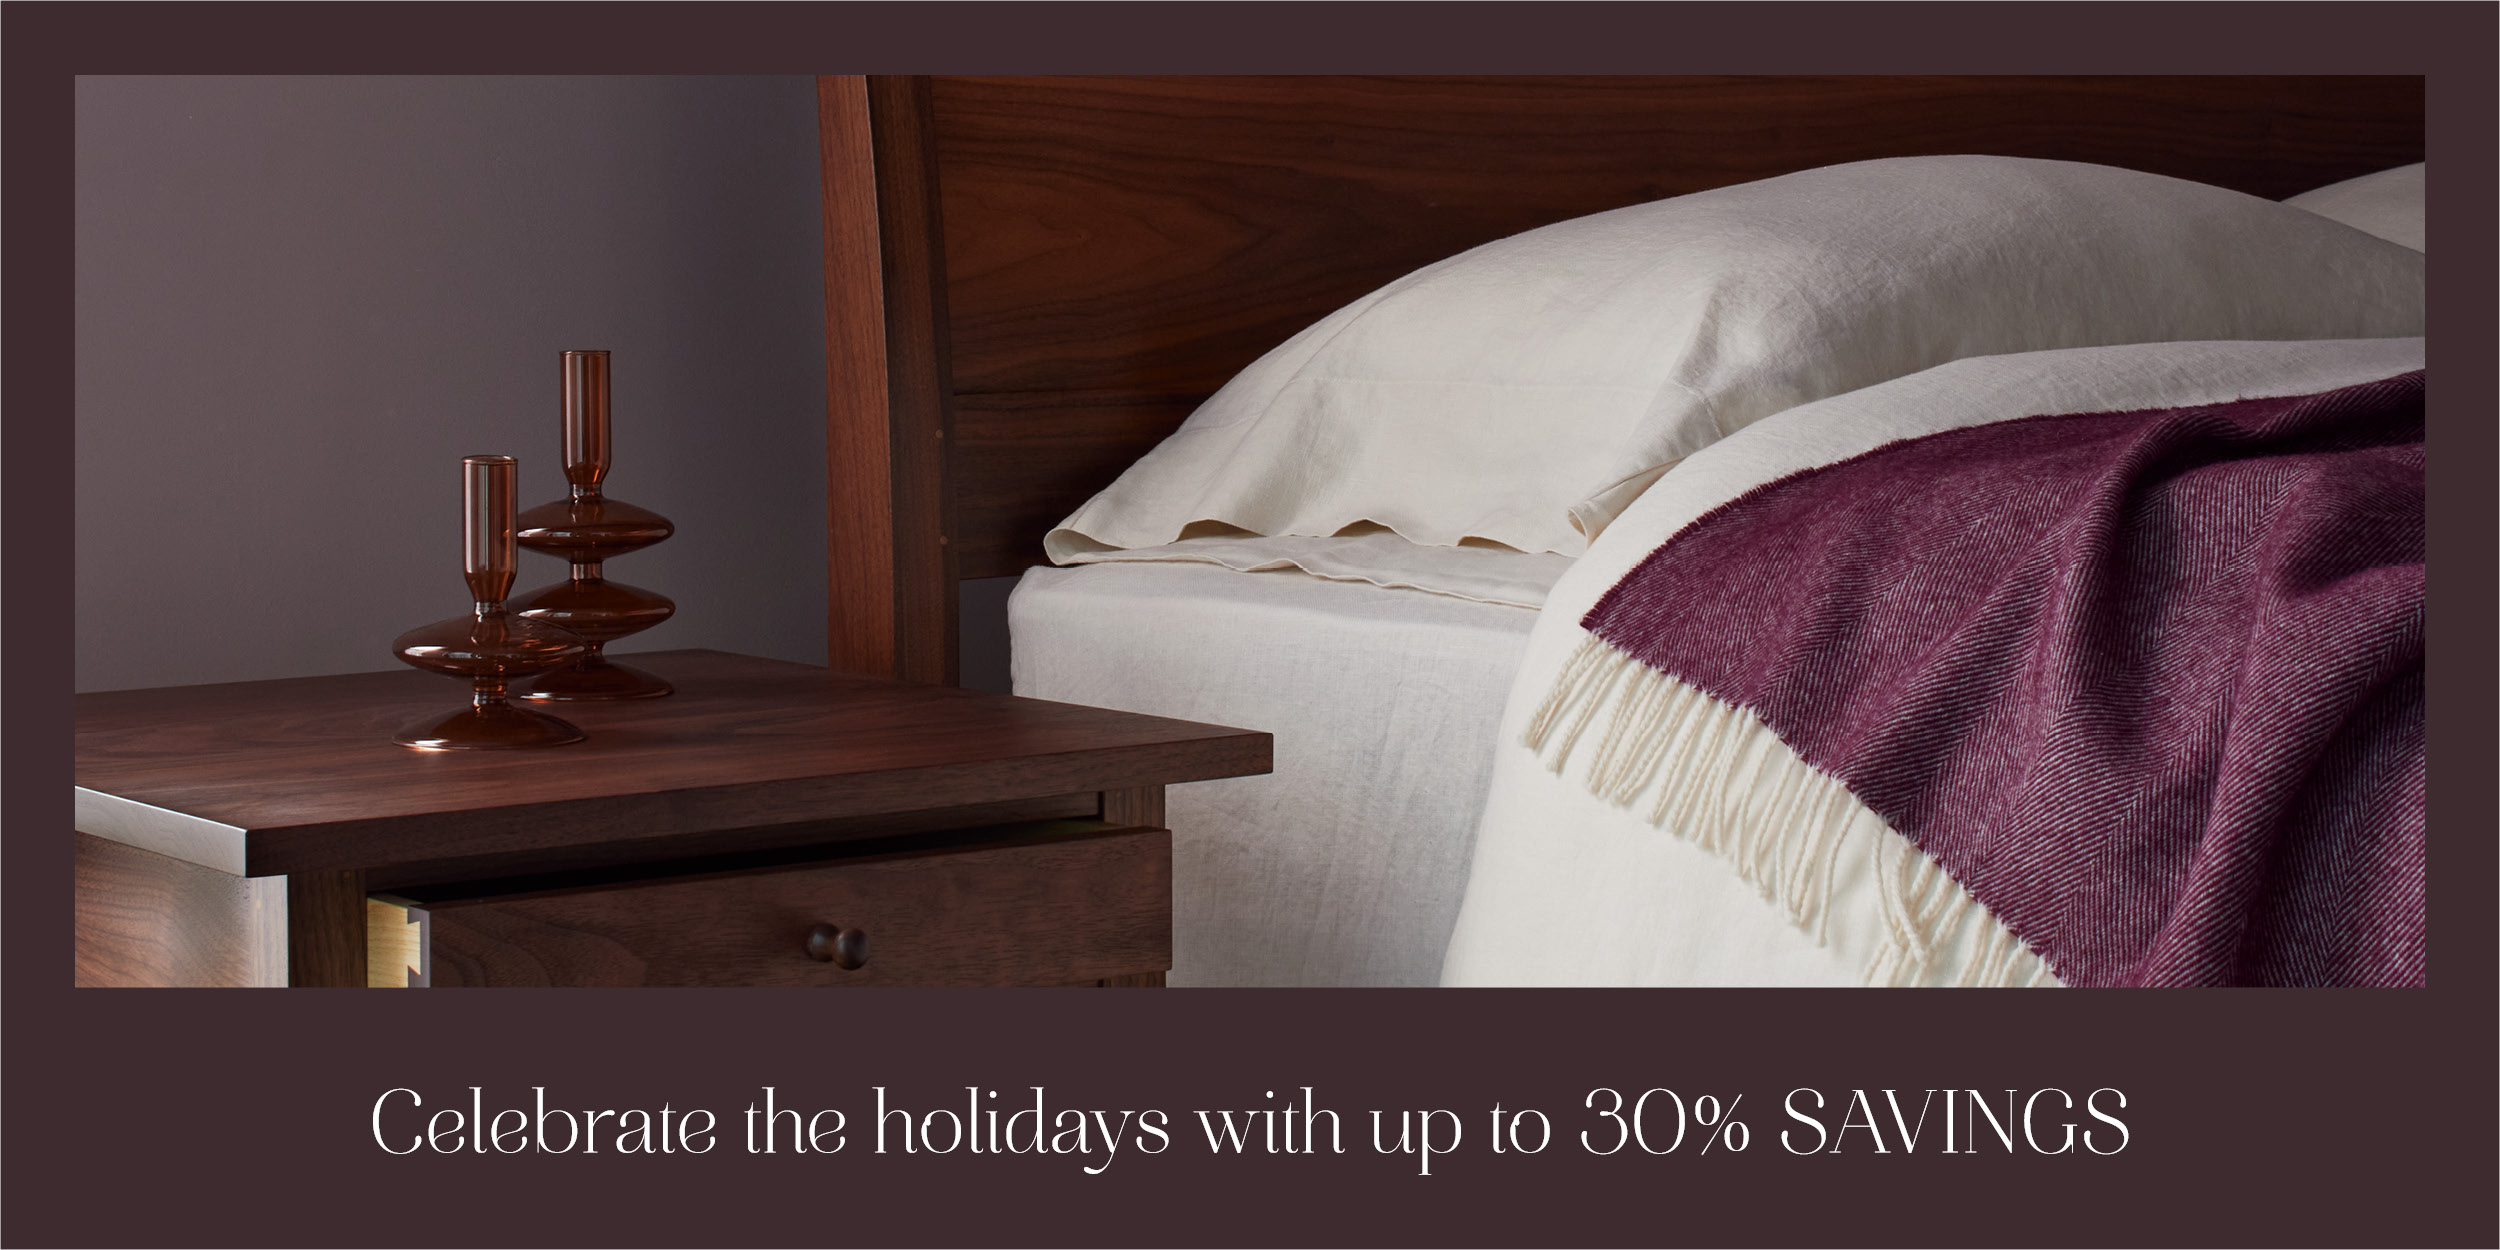 Celebrate the holidays with up to 30% savings - bedroom furniture